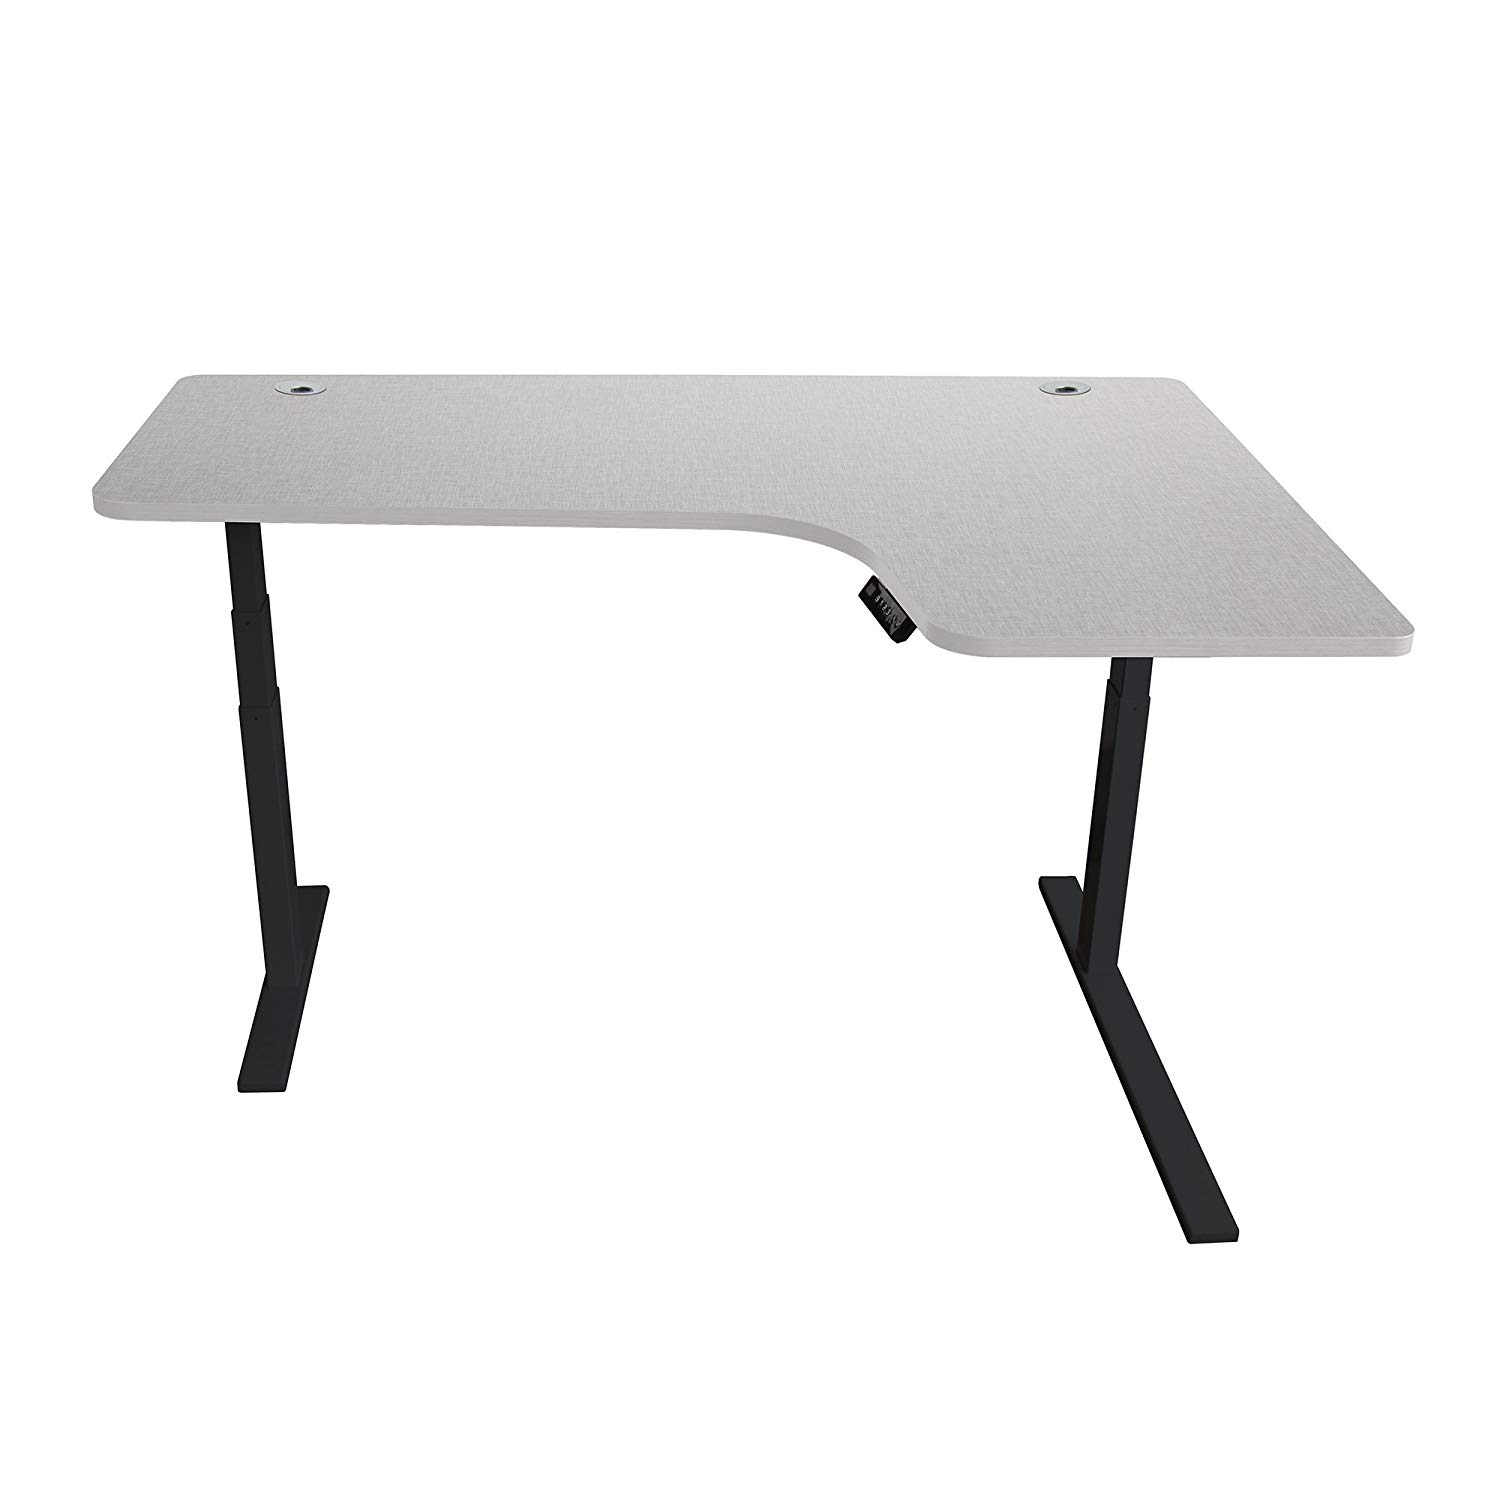 Caesar Hardware AB3-63LA Ergonomic 63-in 3 Memory Buttons LED Electric Automatic Height Adjustable Sit to Stand L-Shaped Corner Work Office Desk with Black Legs, Off White Maple